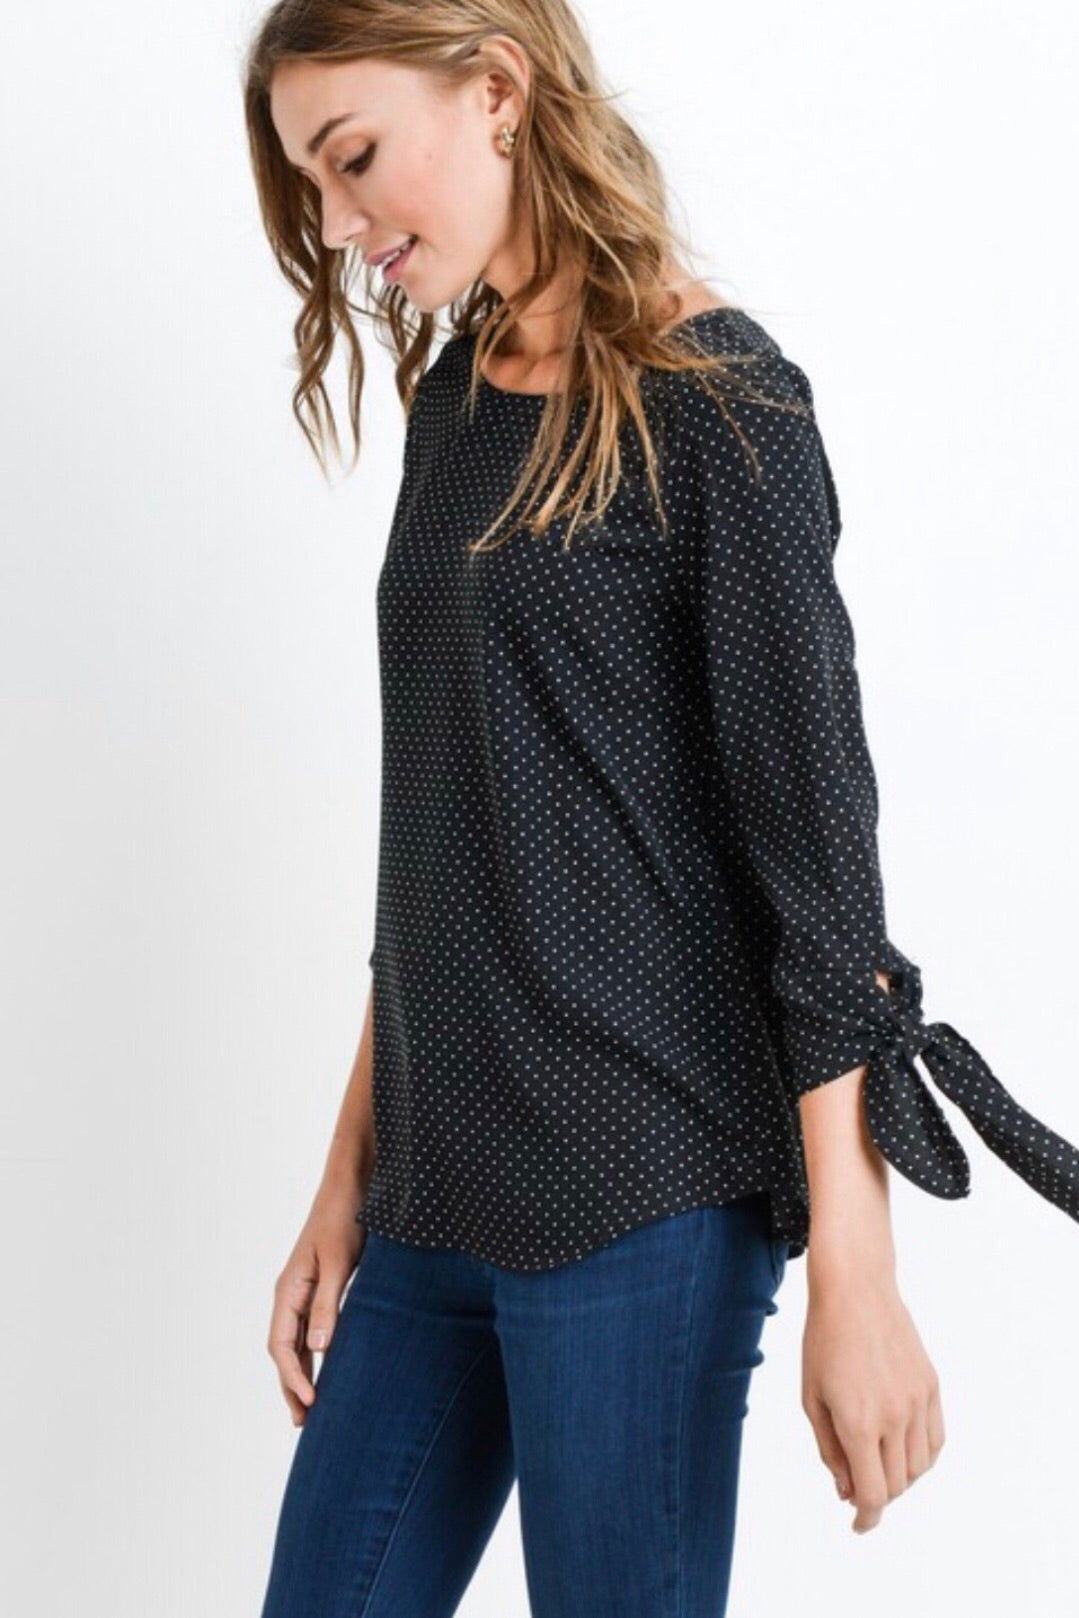 Polka Dot Top with Tie Sleeves